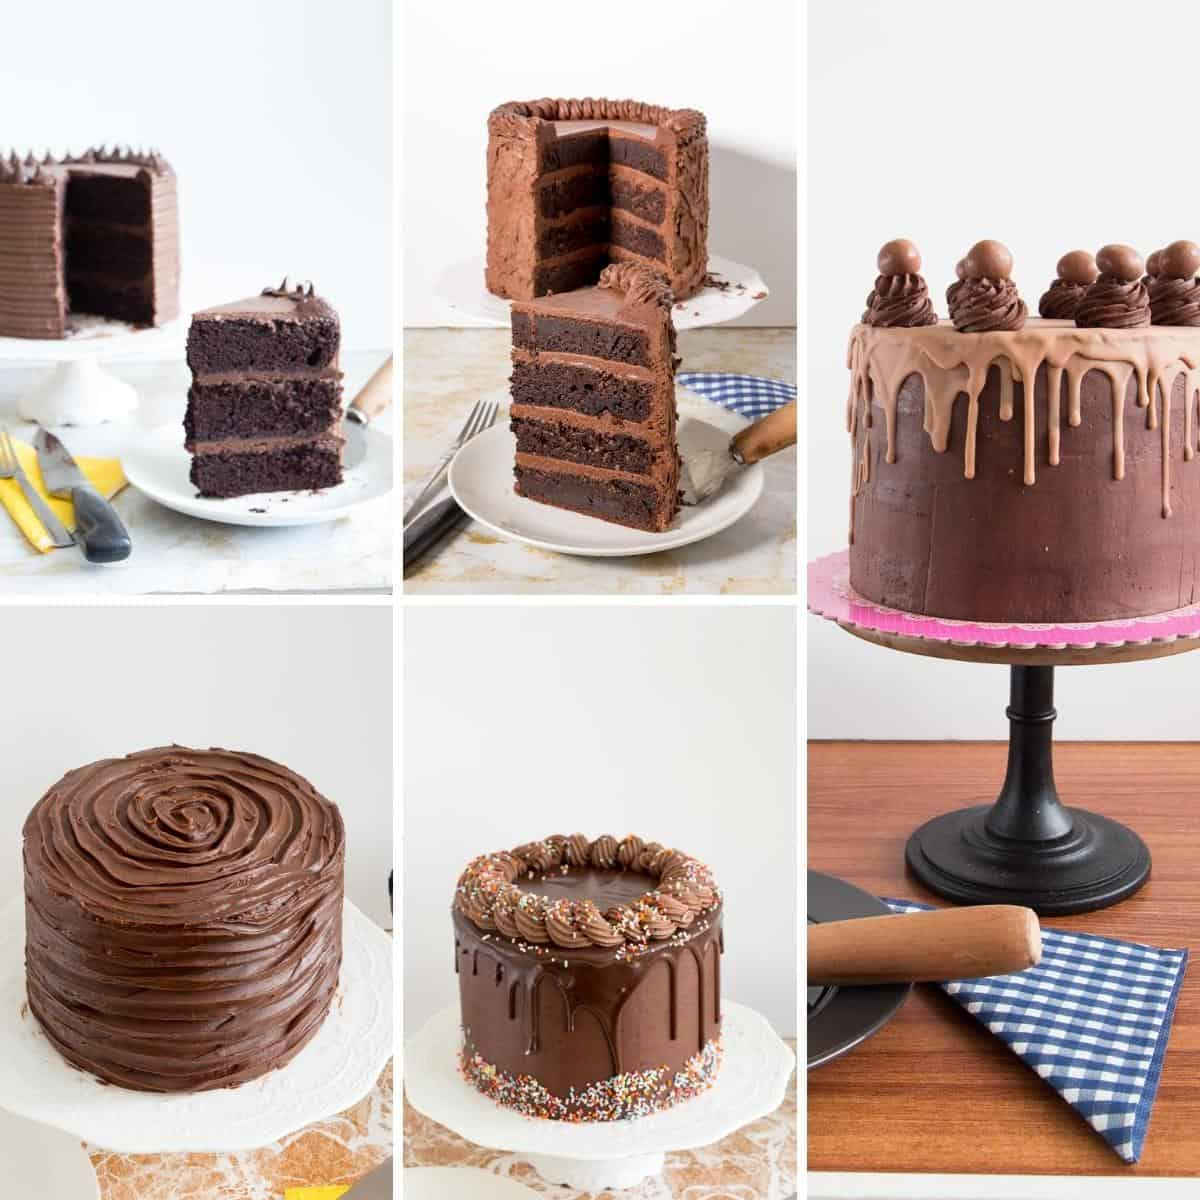 How to make tall layer cakes baked from scratch that look impressive and decadent